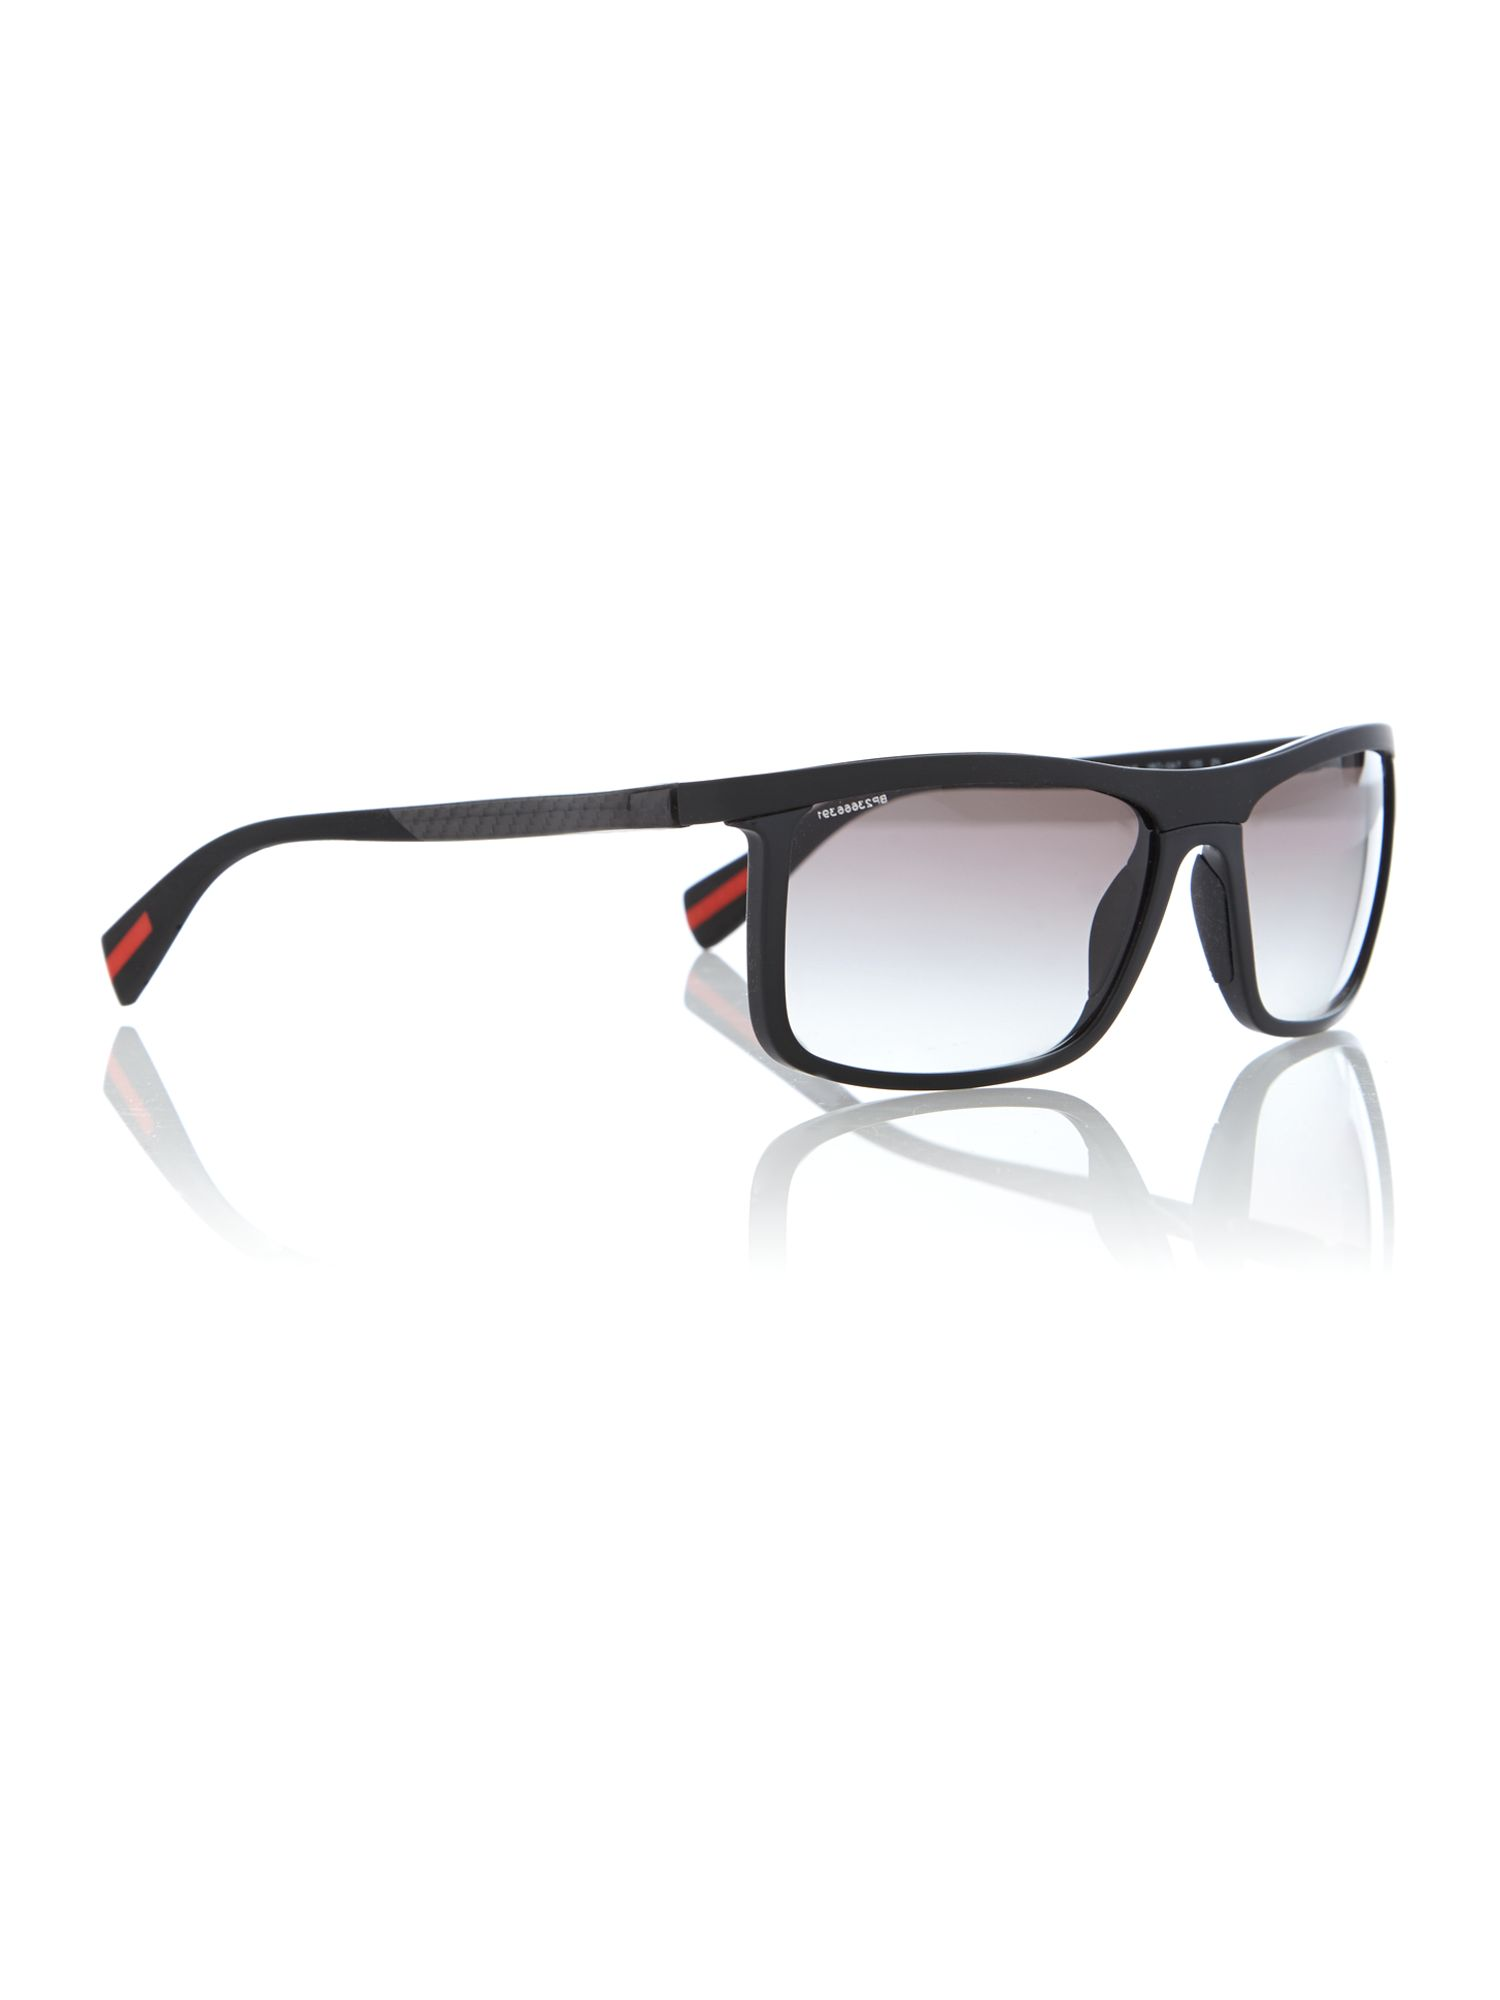 Men`s 0ps 51ps sunglasses